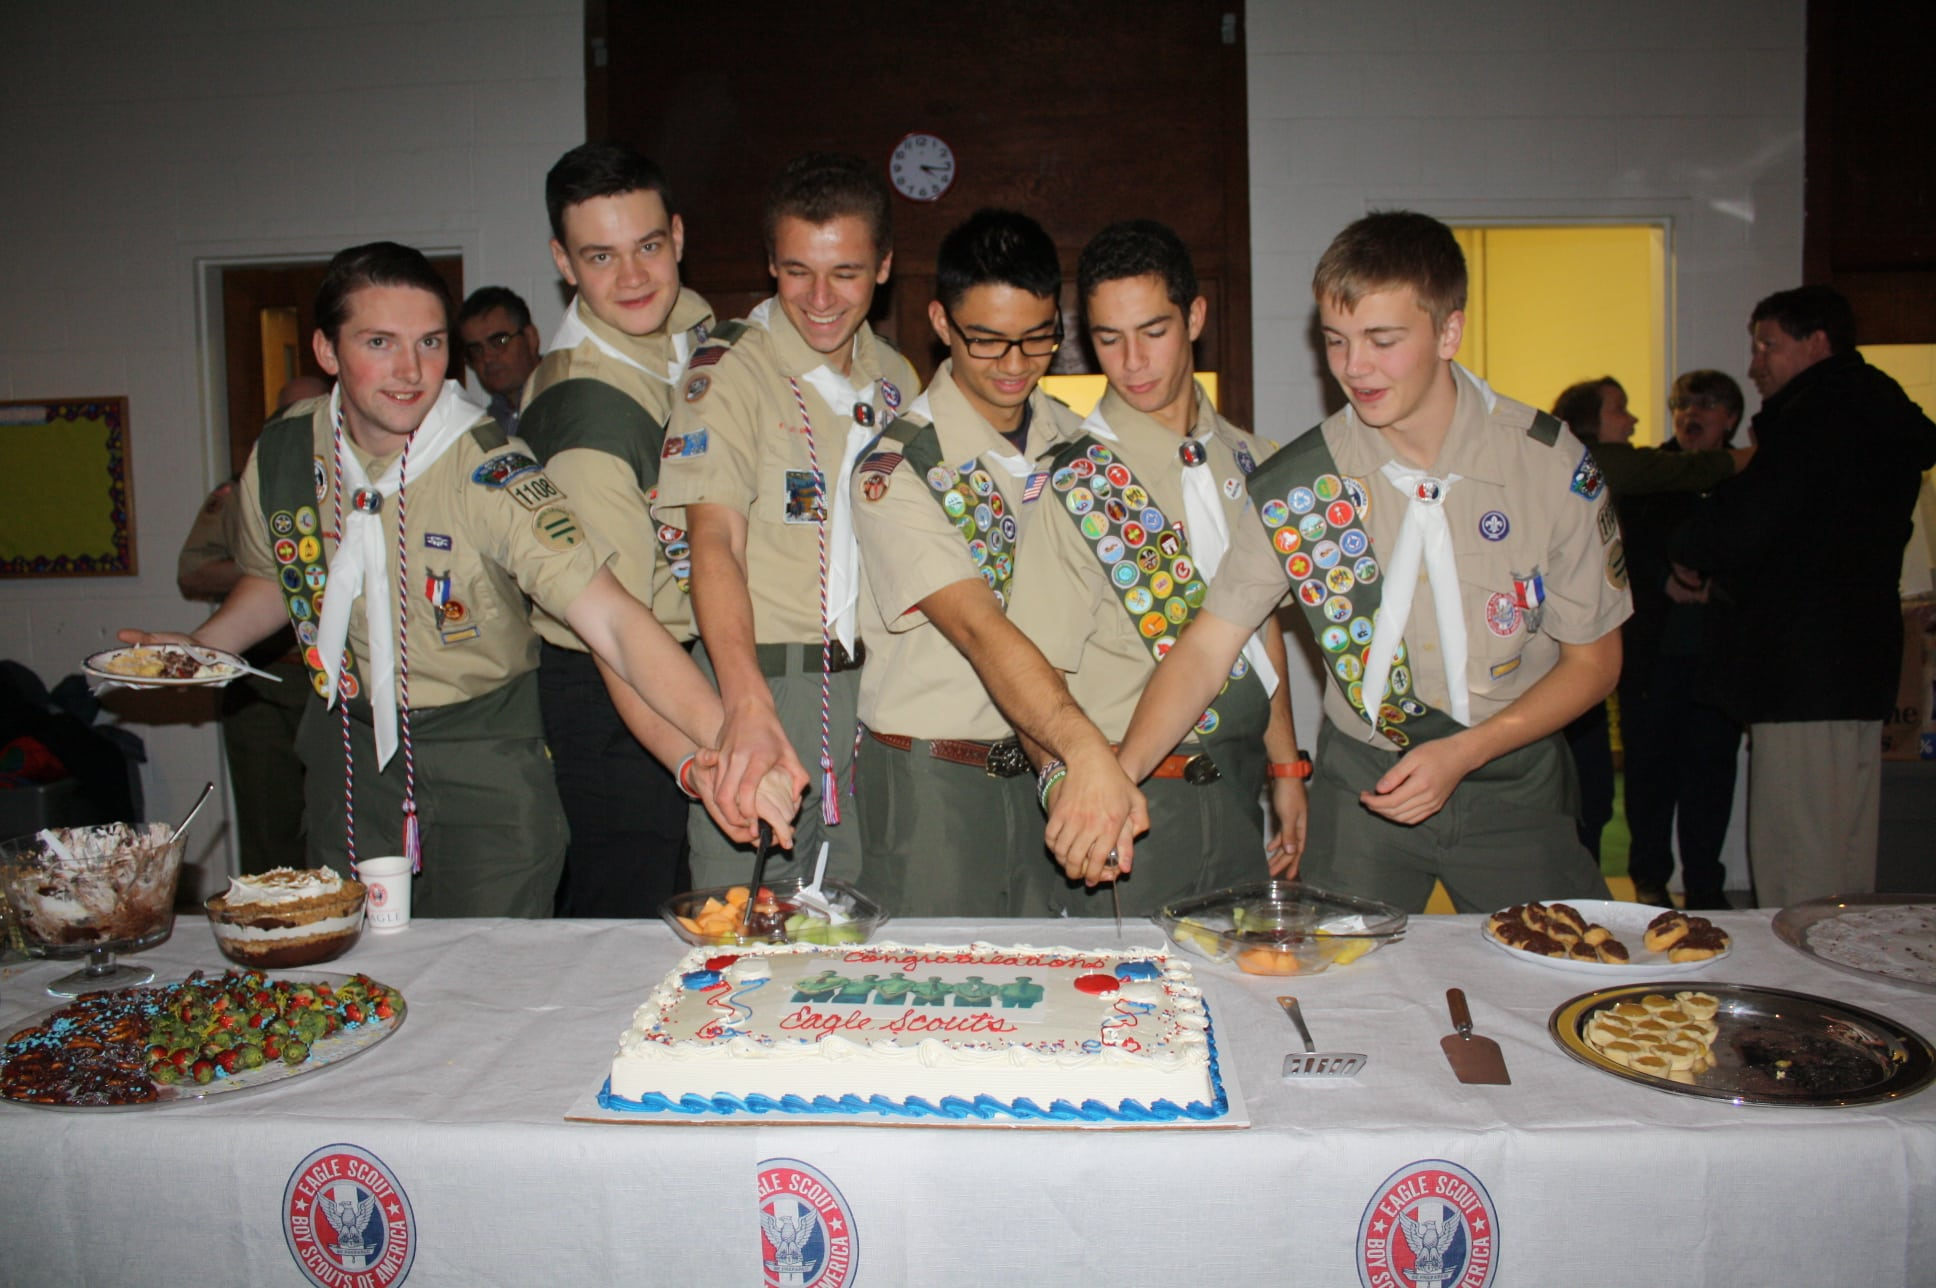 Troop 185 Eagle Scouts